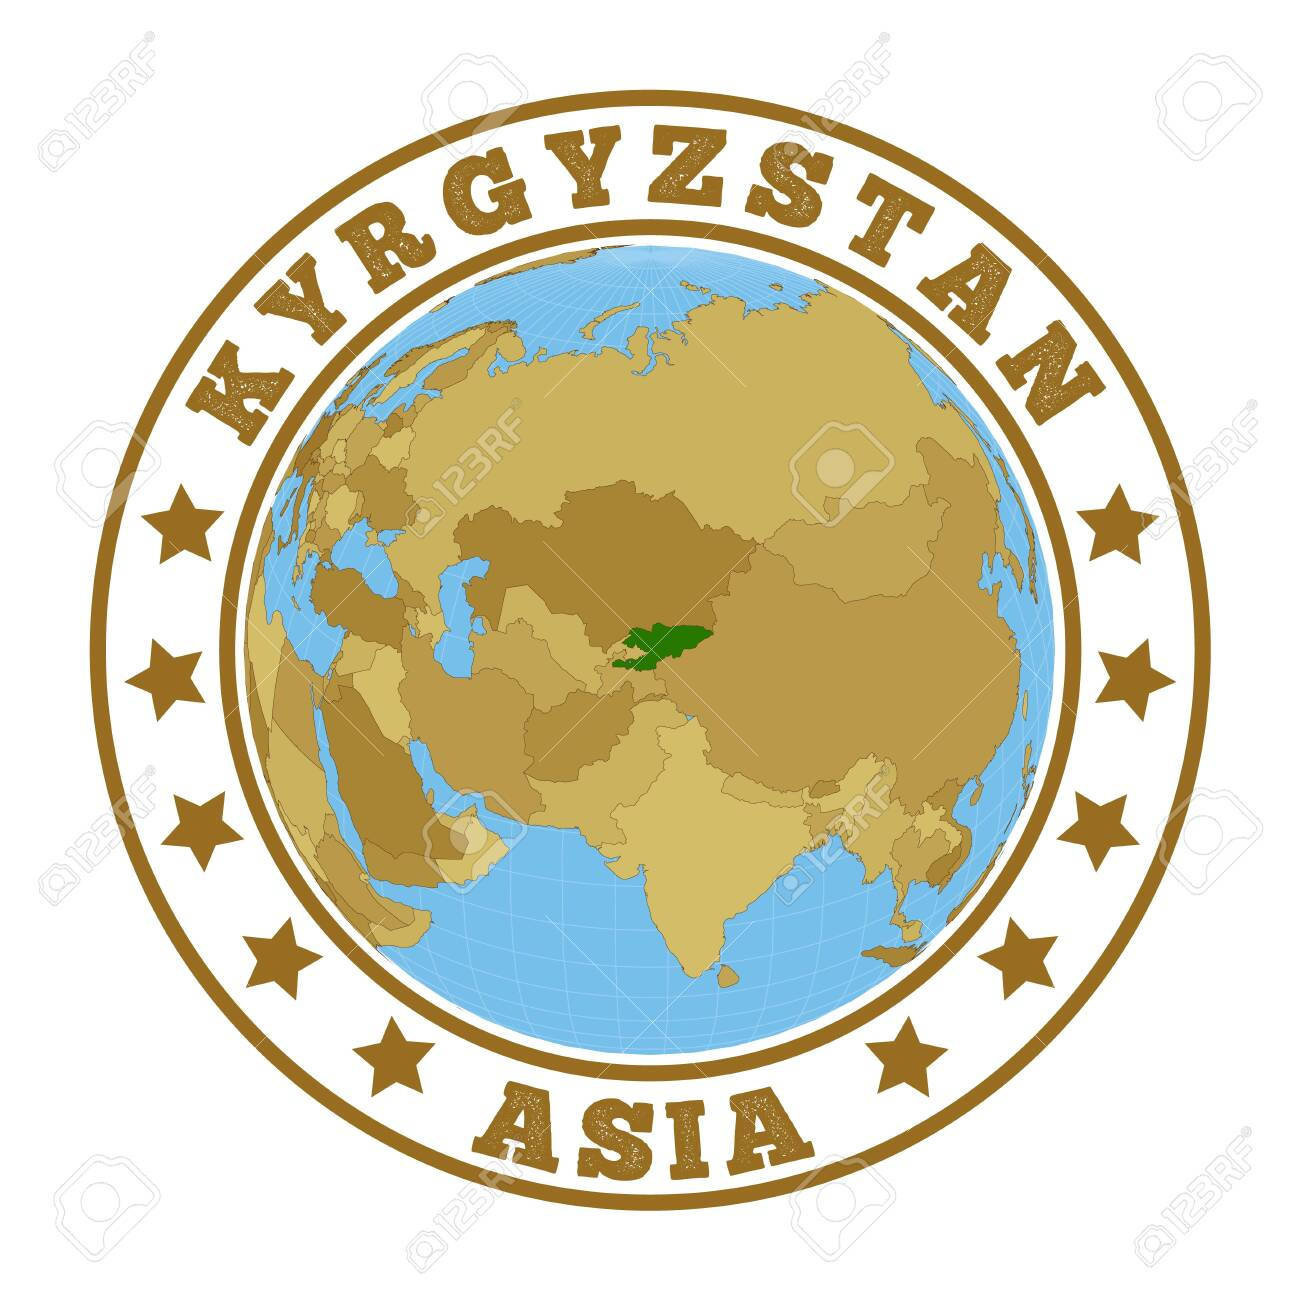 Picture of: Round Badge Of Country With Map Of Kyrgyzstan In World Context Royalty Free Cliparts Vectors And Stock Illustration Image 135959078